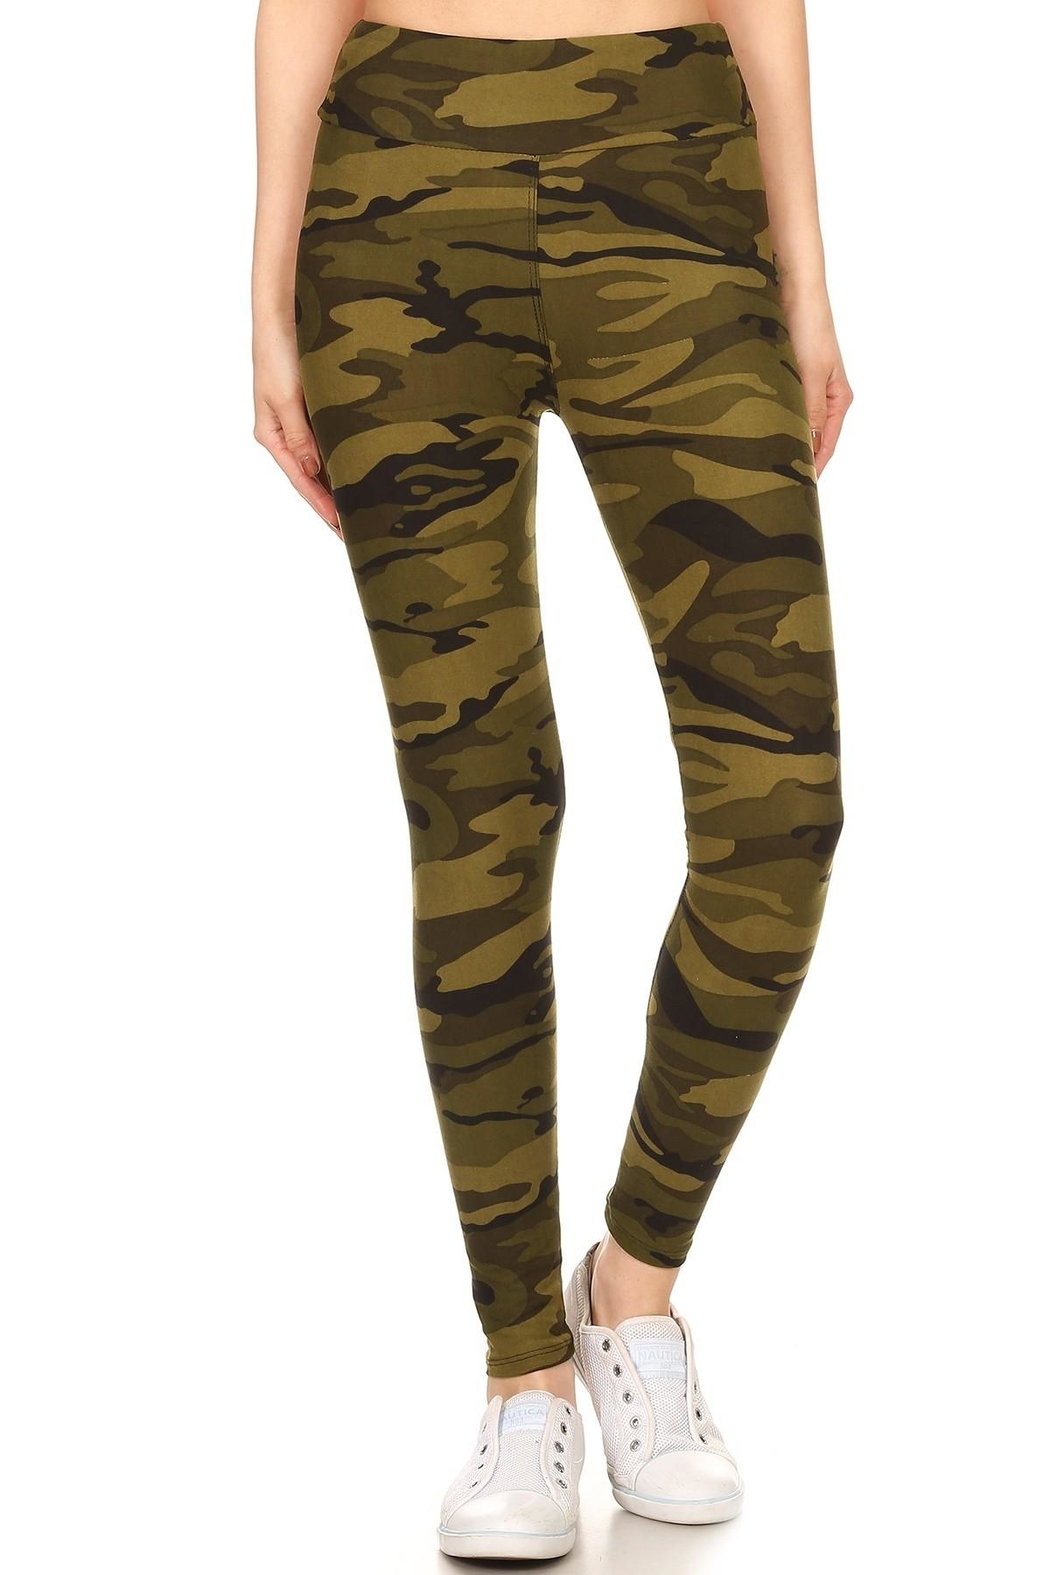 Leg Avenue Camoflauge Yoga Pants - Main Image